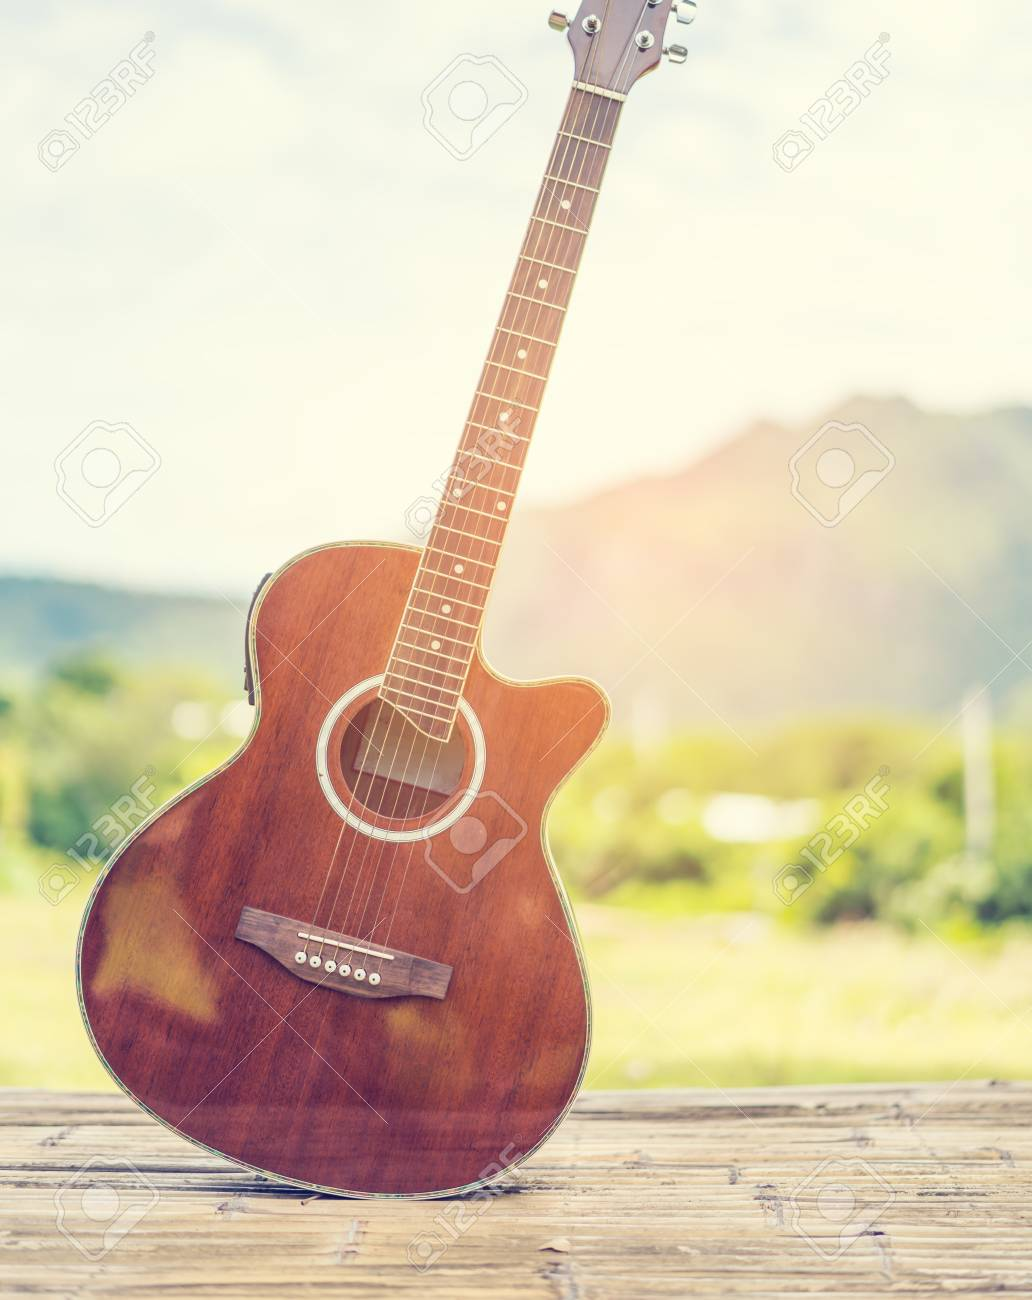 Guitar Nature And Mountain Background Music Guitar And Nature 1032x1300